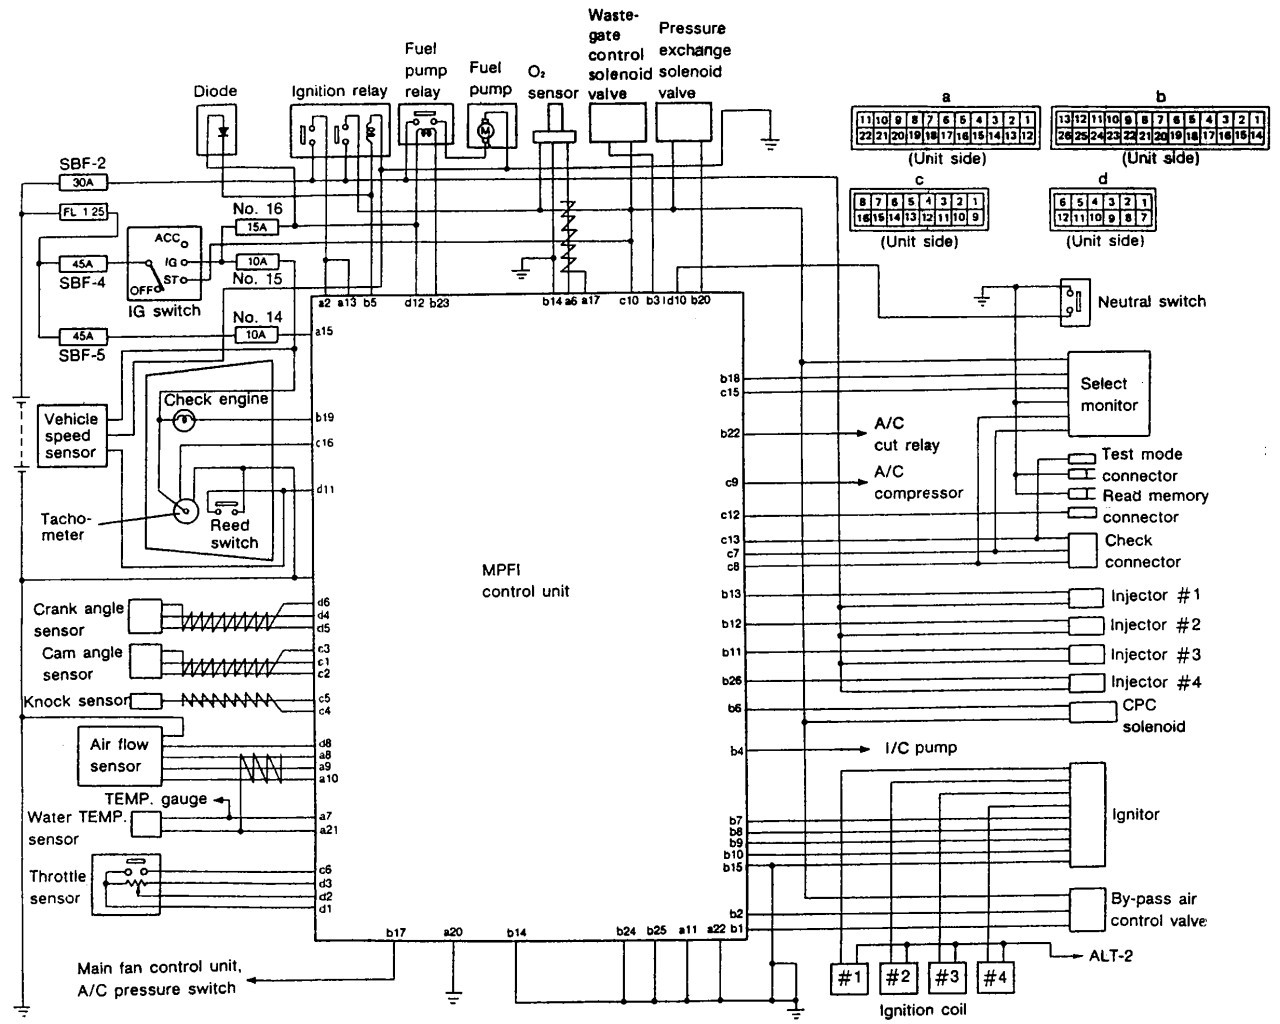 Jeep Liberty Wiring Diagram Images